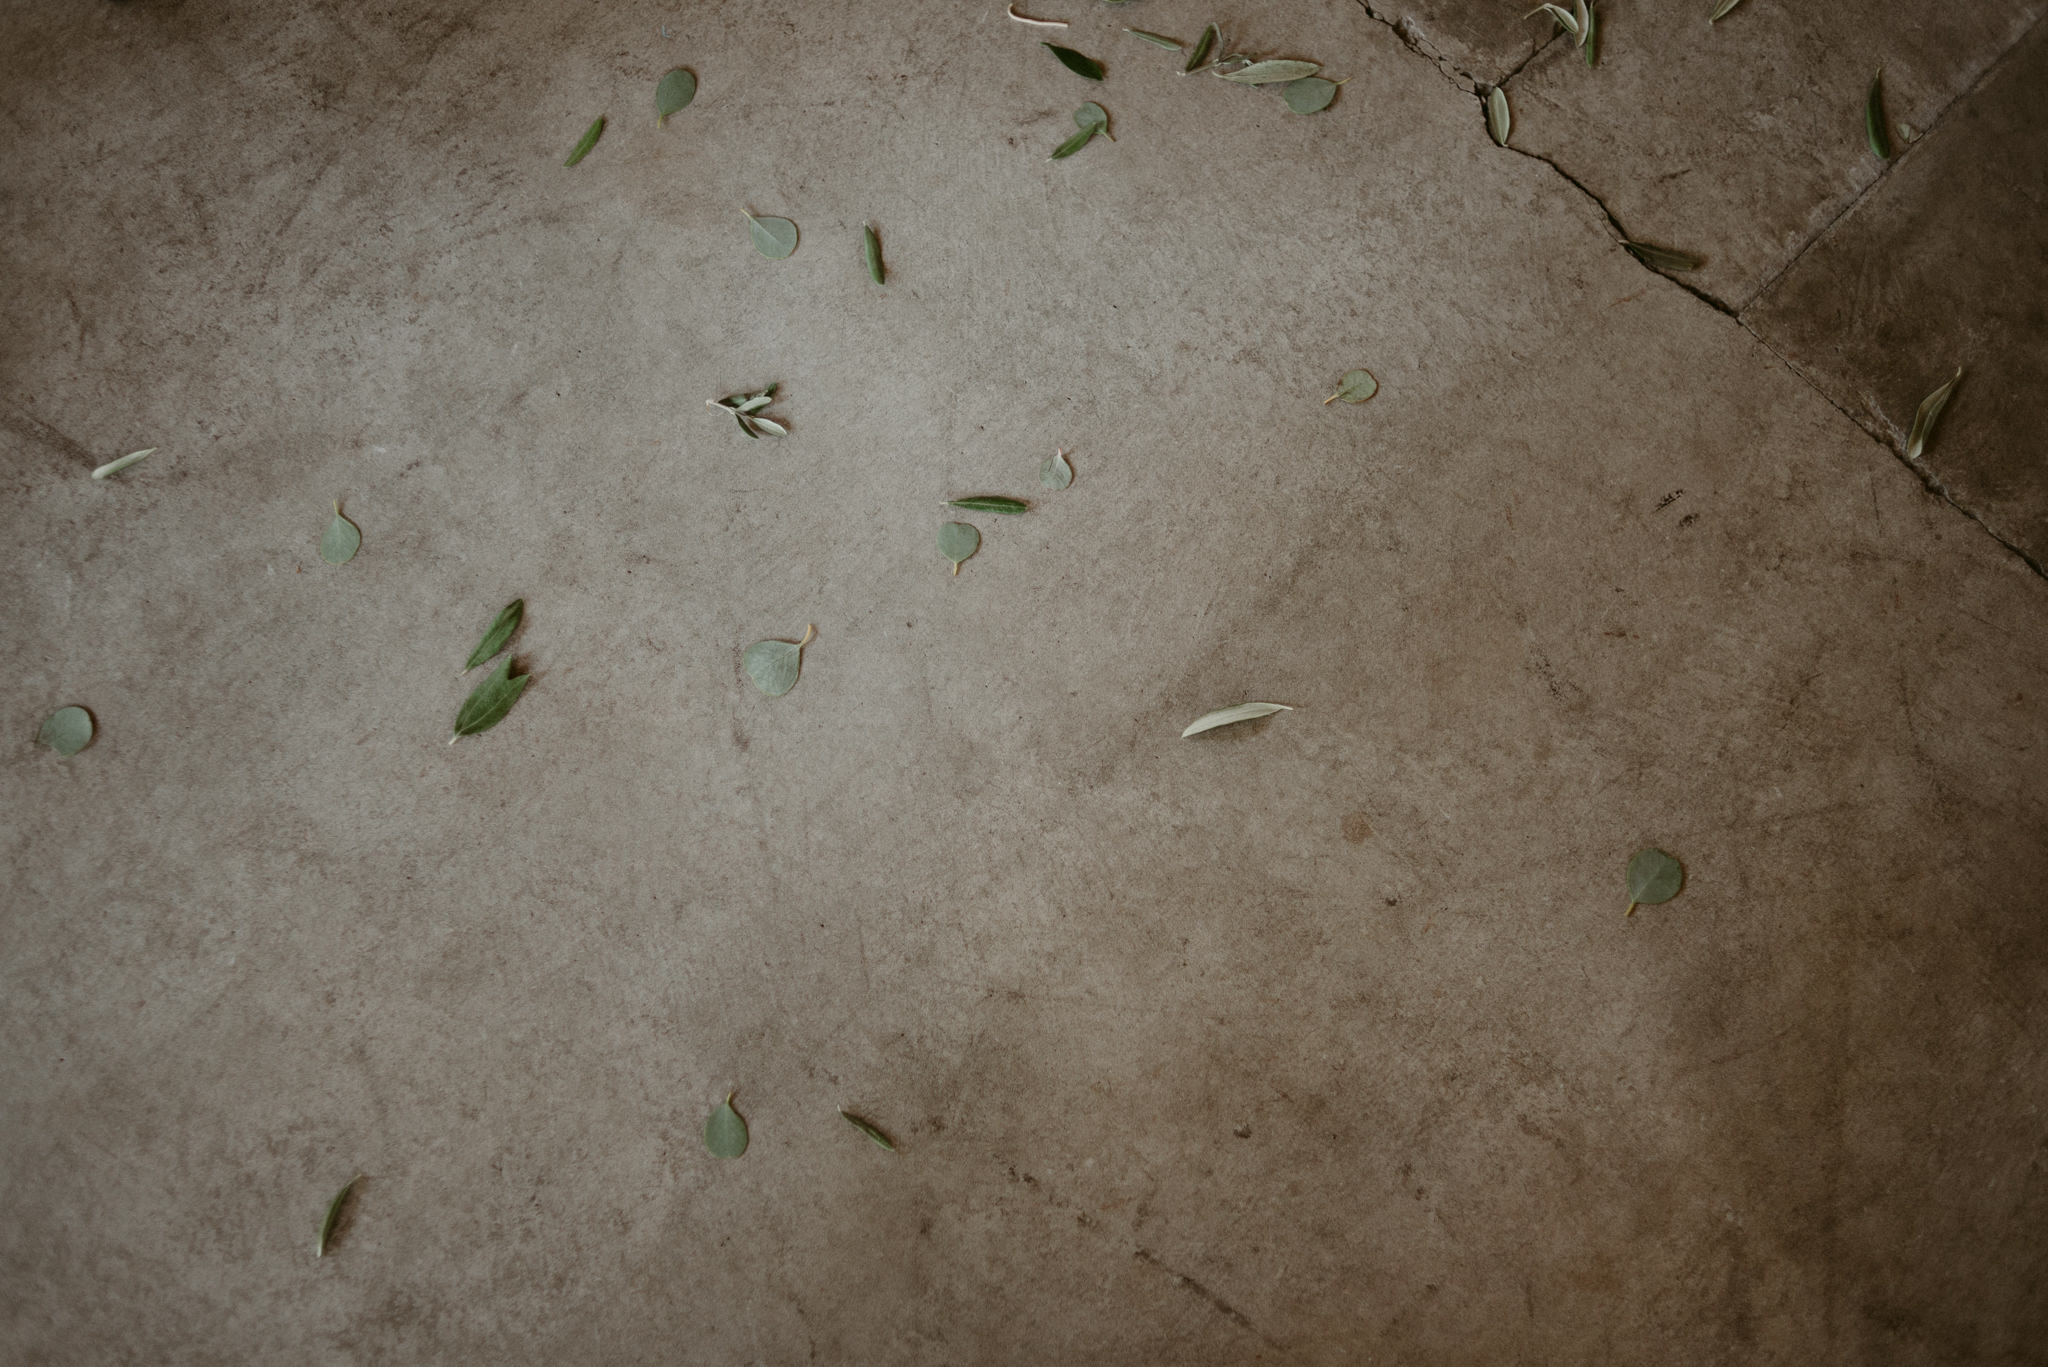 leaves on concrete floor